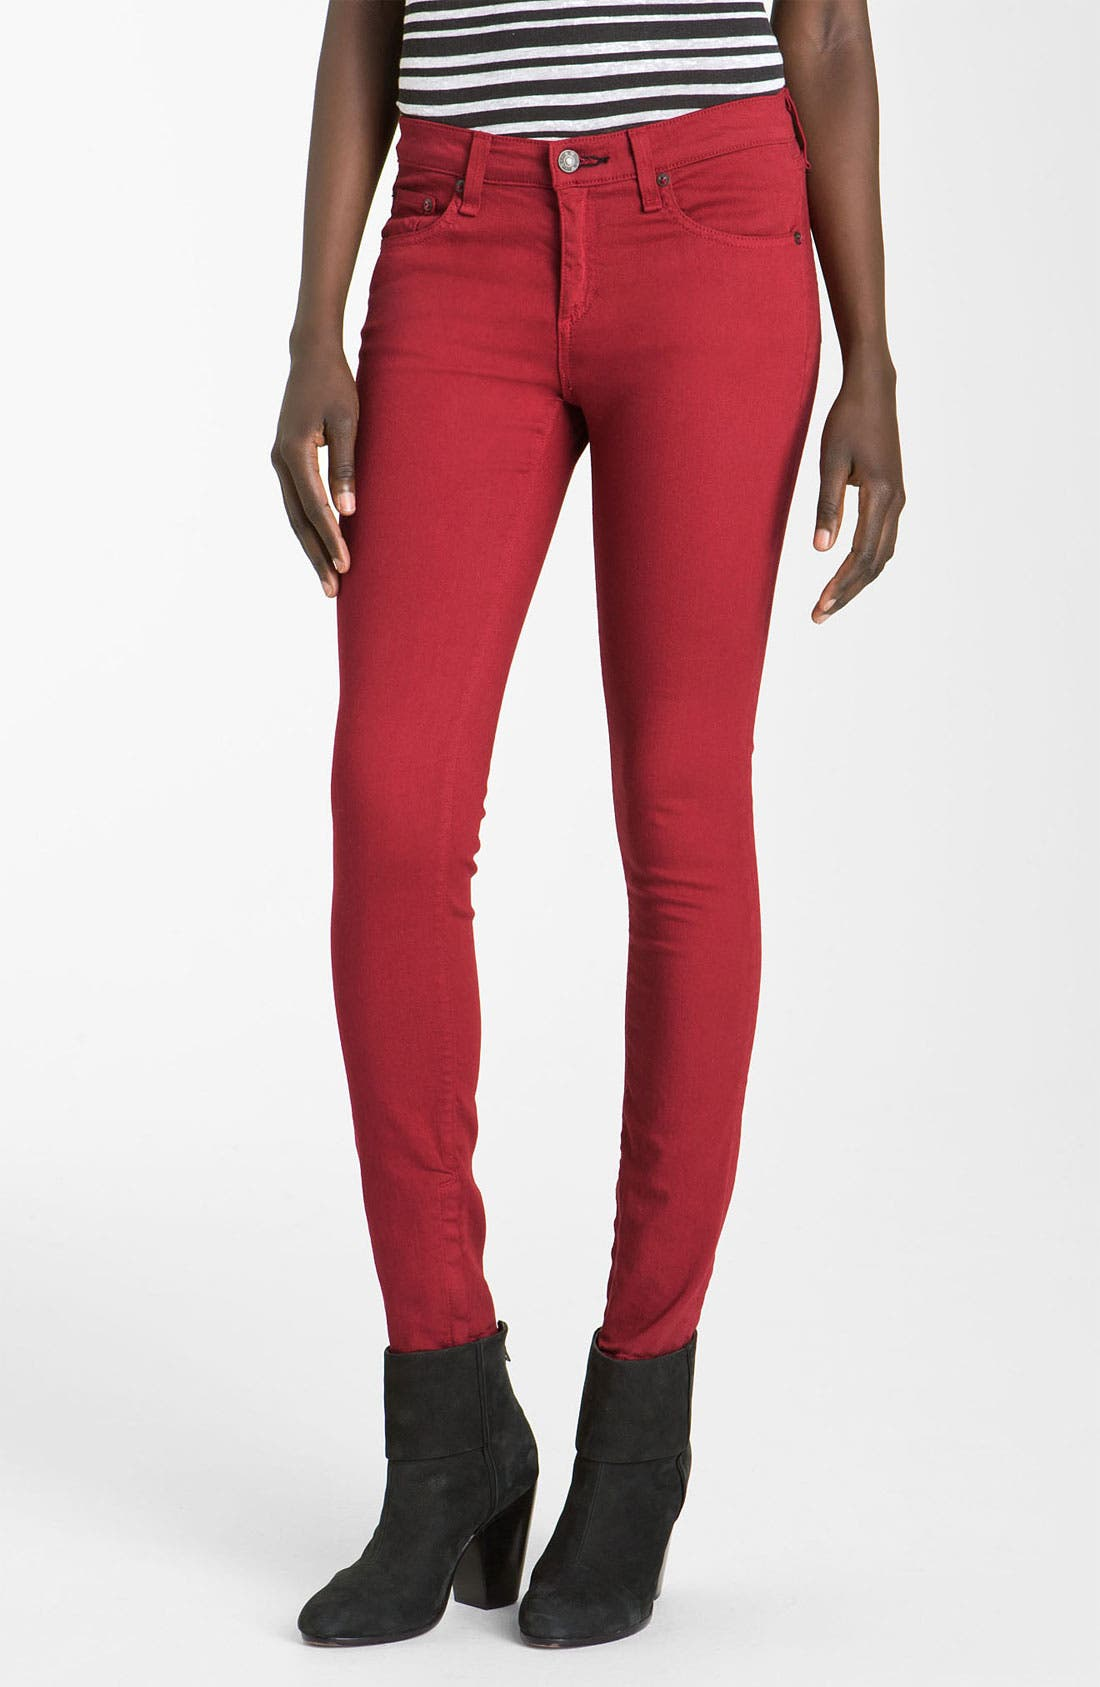 RAG & BONE JEAN Skinny Zip Detail Stretch Jeans, Main, color, 600